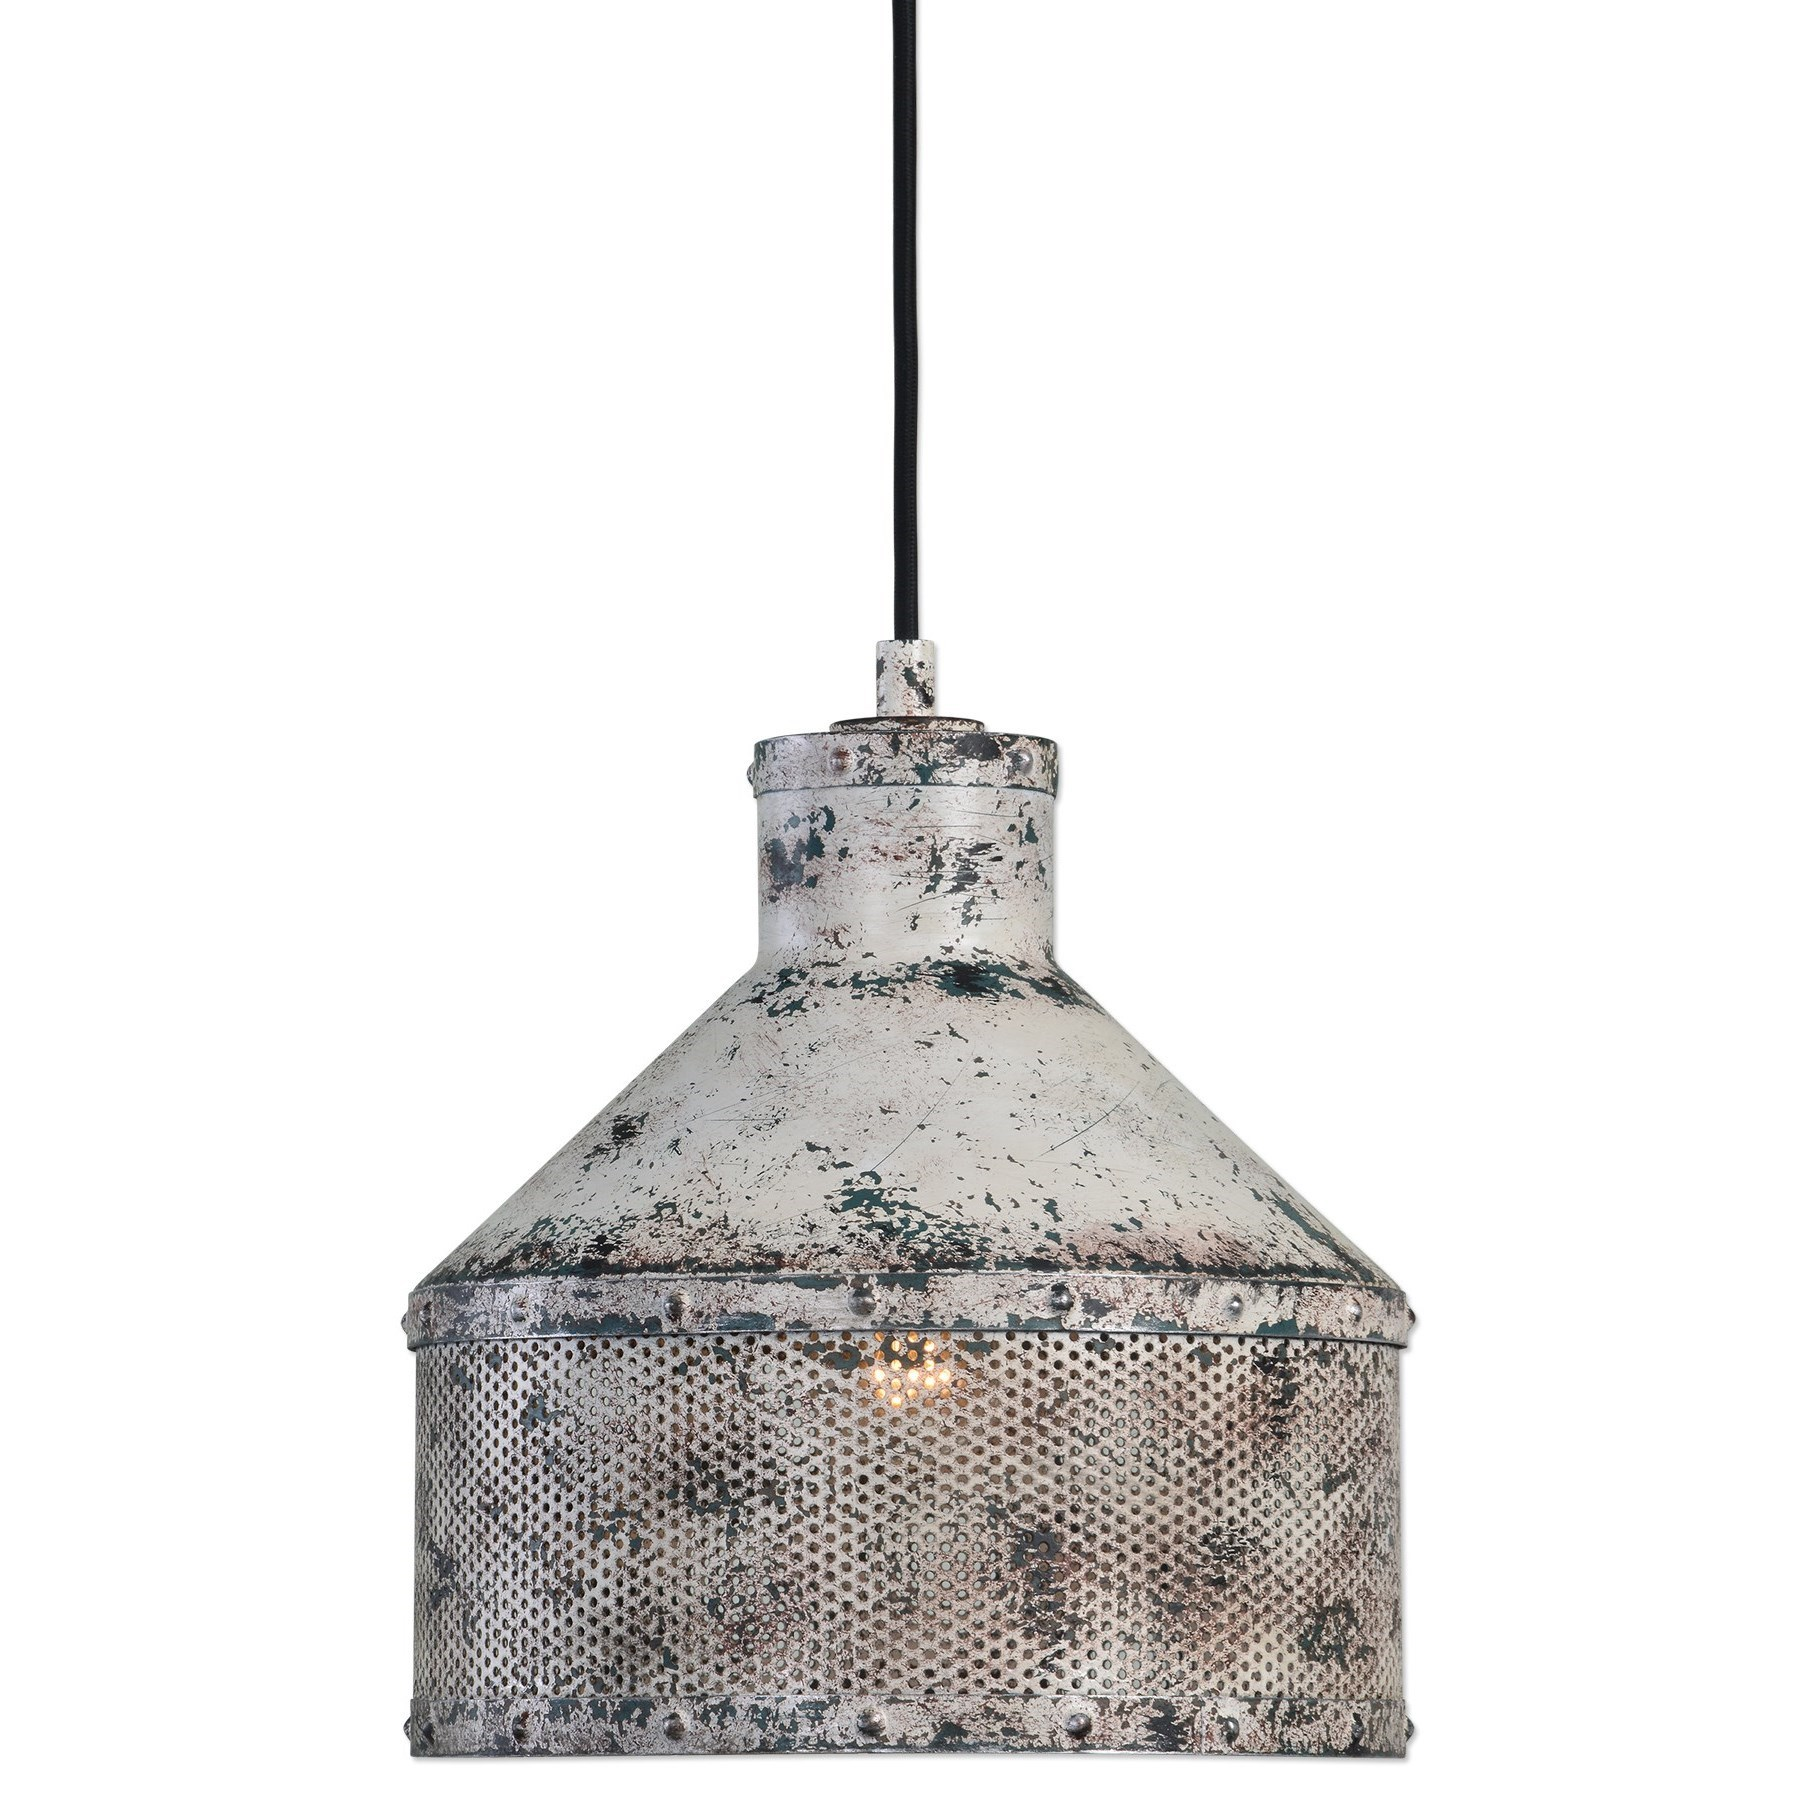 Uttermost Lighting Fixtures Granaio 1 Light Rustic Pendant - Item Number: 22087